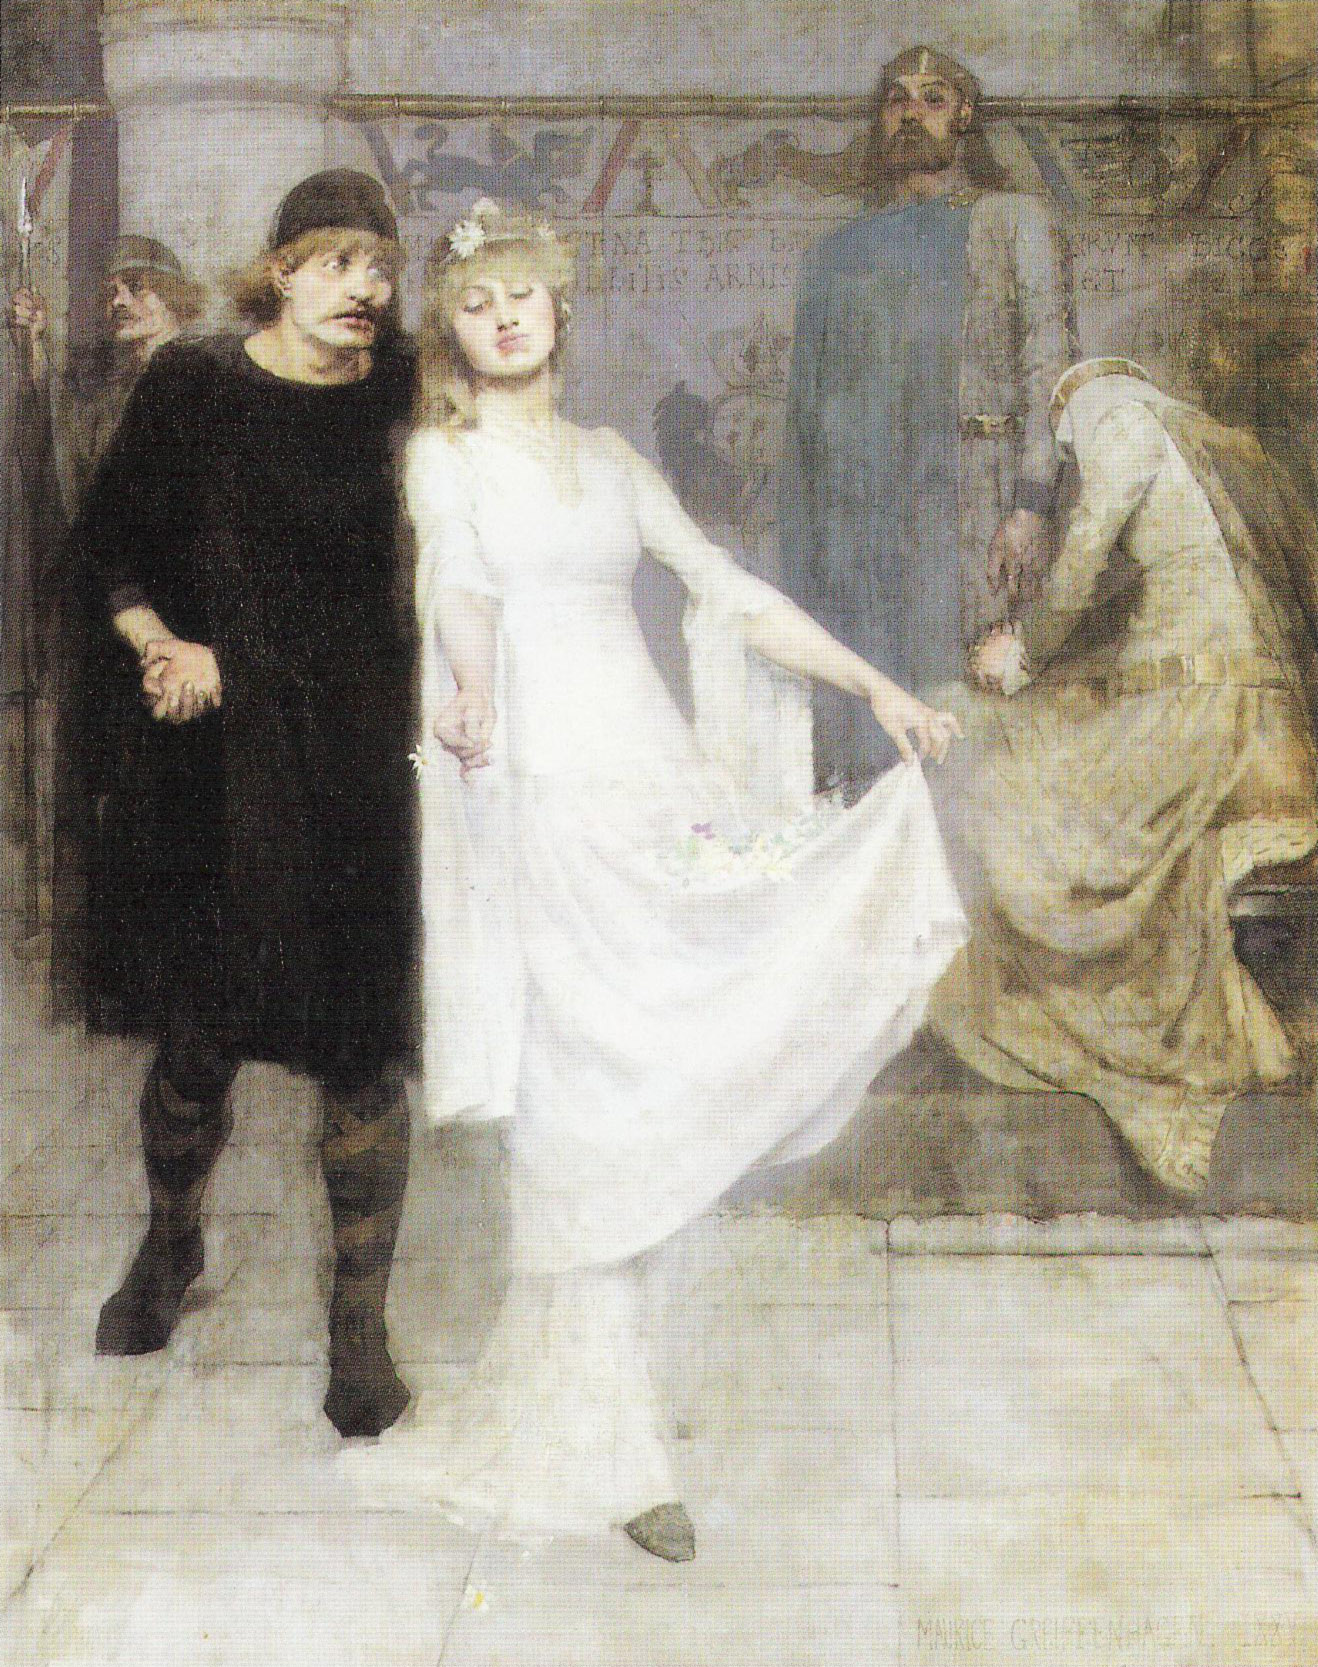 ophelia and gertrude essay As kay stanton argues in her essay hamlet's whores: but unlike queen gertrude, ophelia has good reason to be unaware of the harsh realities of life.